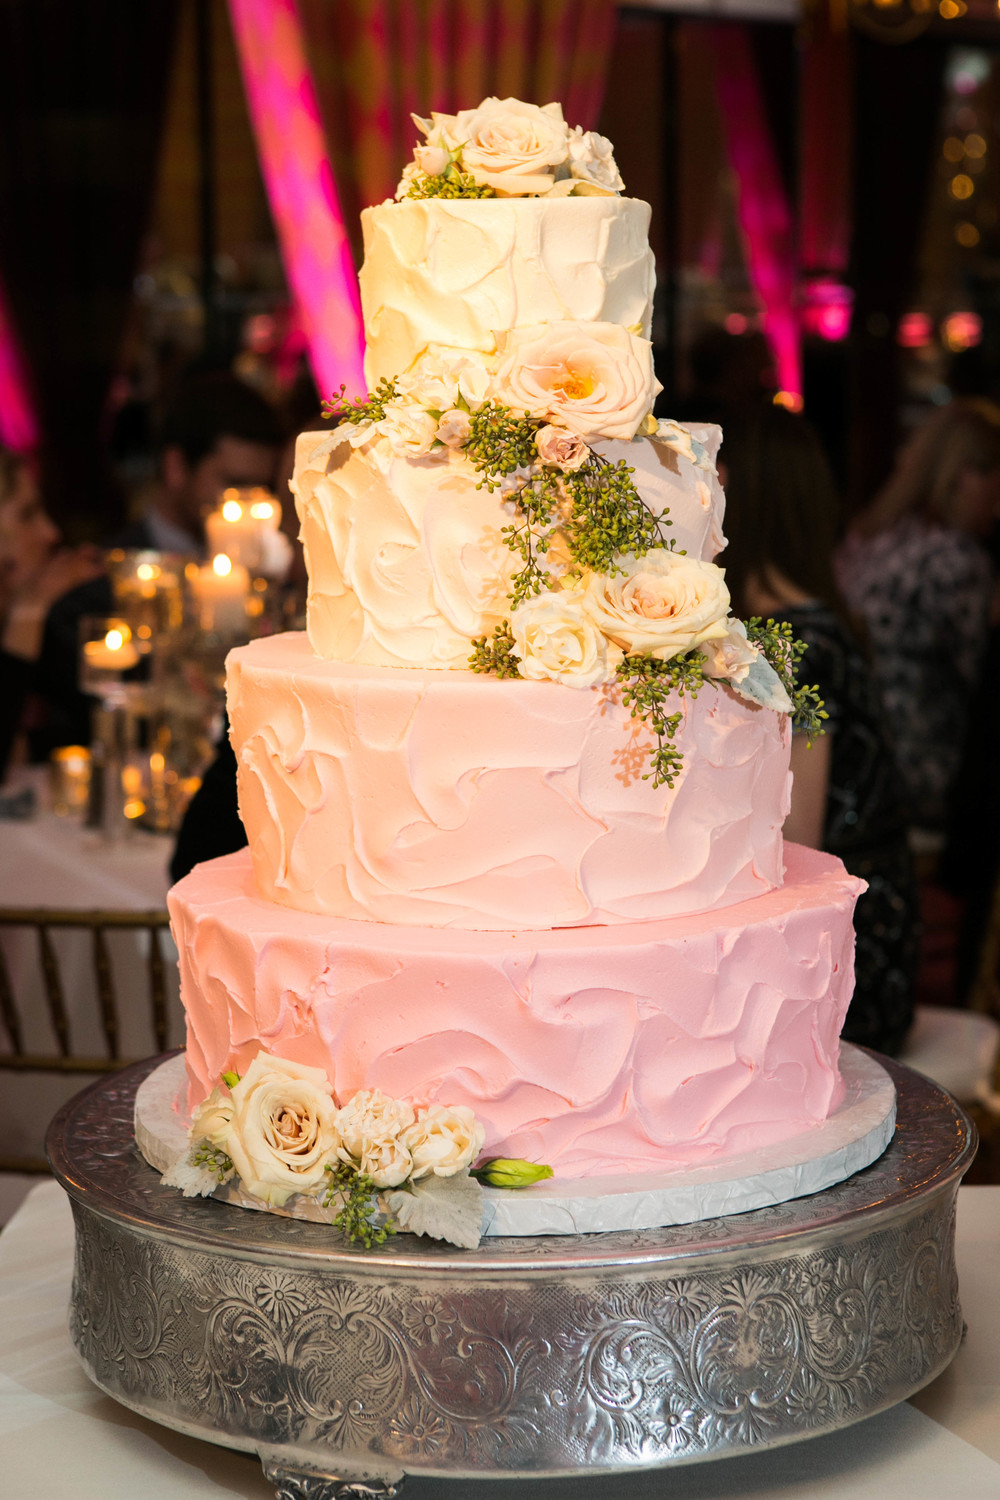 custom-wedding-cake-pink-white-ombre-whipped-texture-sugarbeesweets.jpg